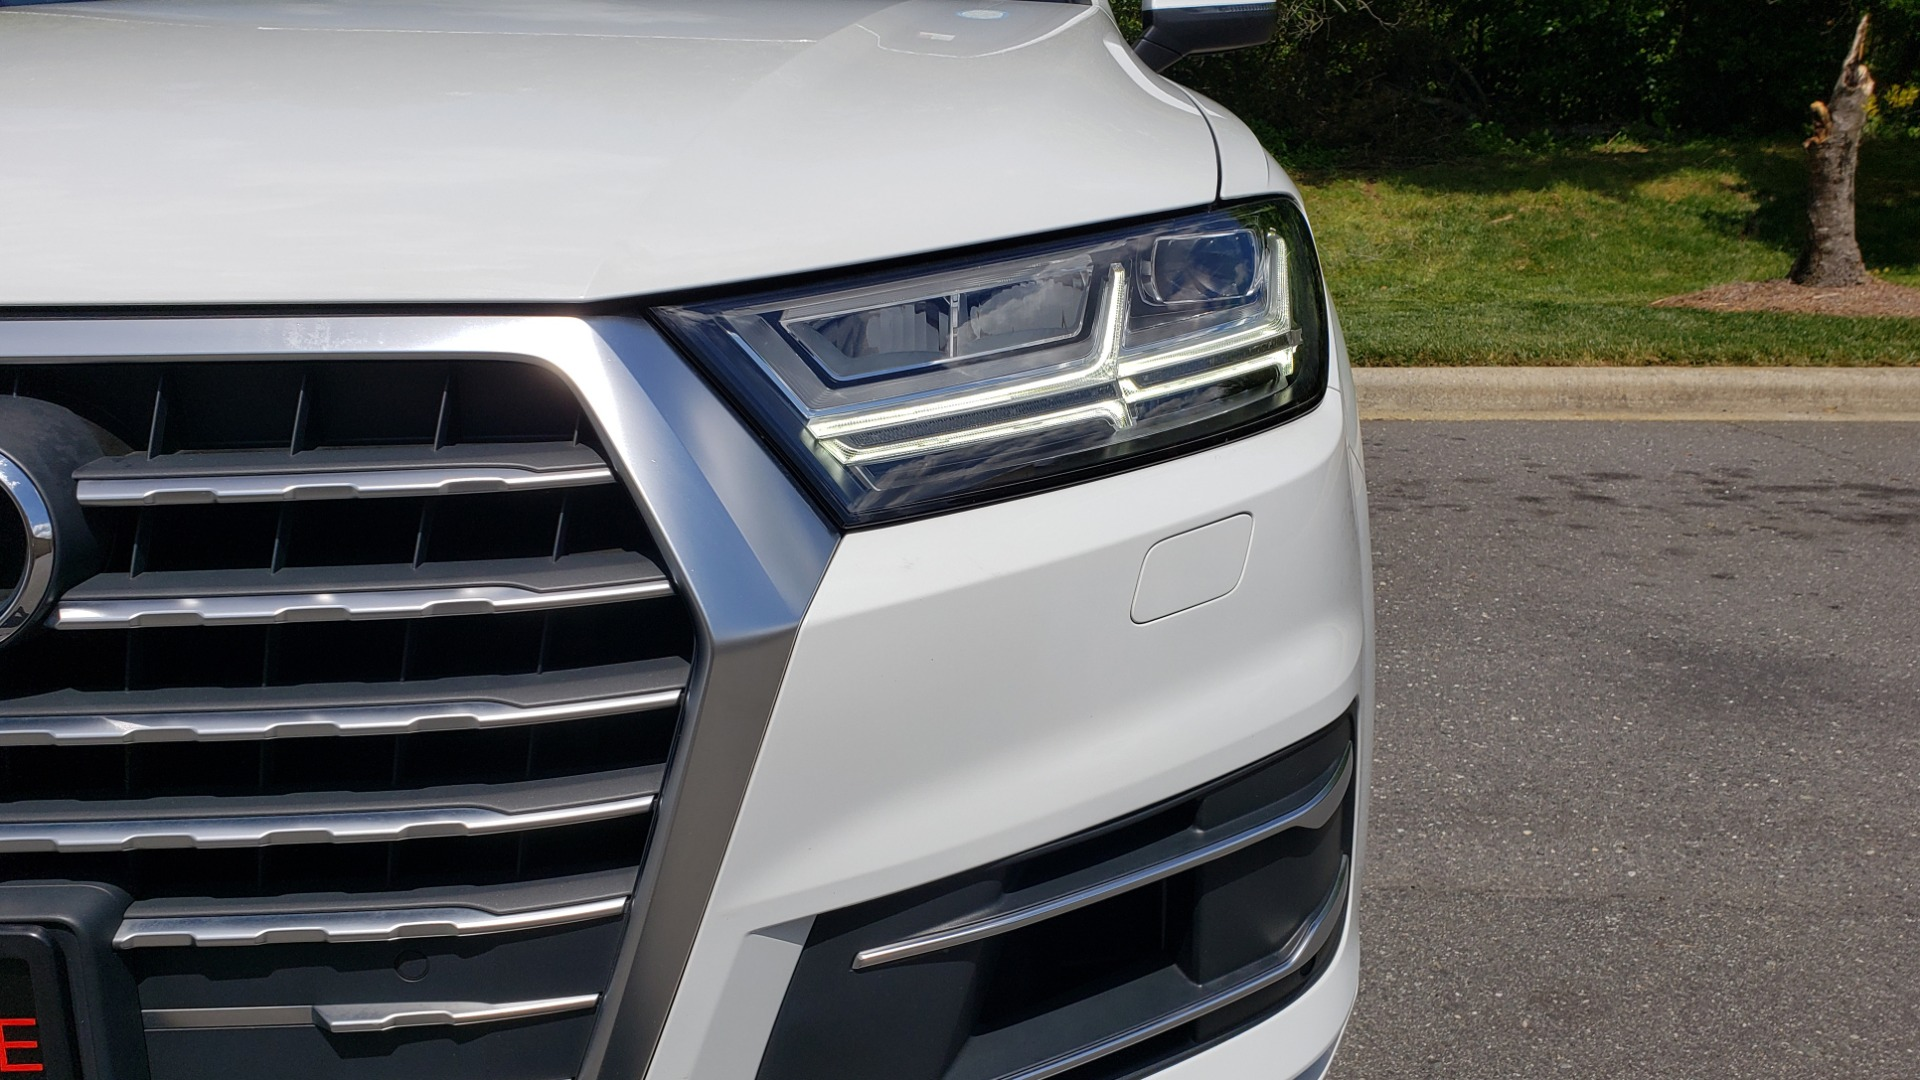 Used 2017 Audi Q7 PREMIUM PLUS / VISION PKG / NAV / PANO-ROOF / 3-ROW / REARVIEW for sale Sold at Formula Imports in Charlotte NC 28227 25